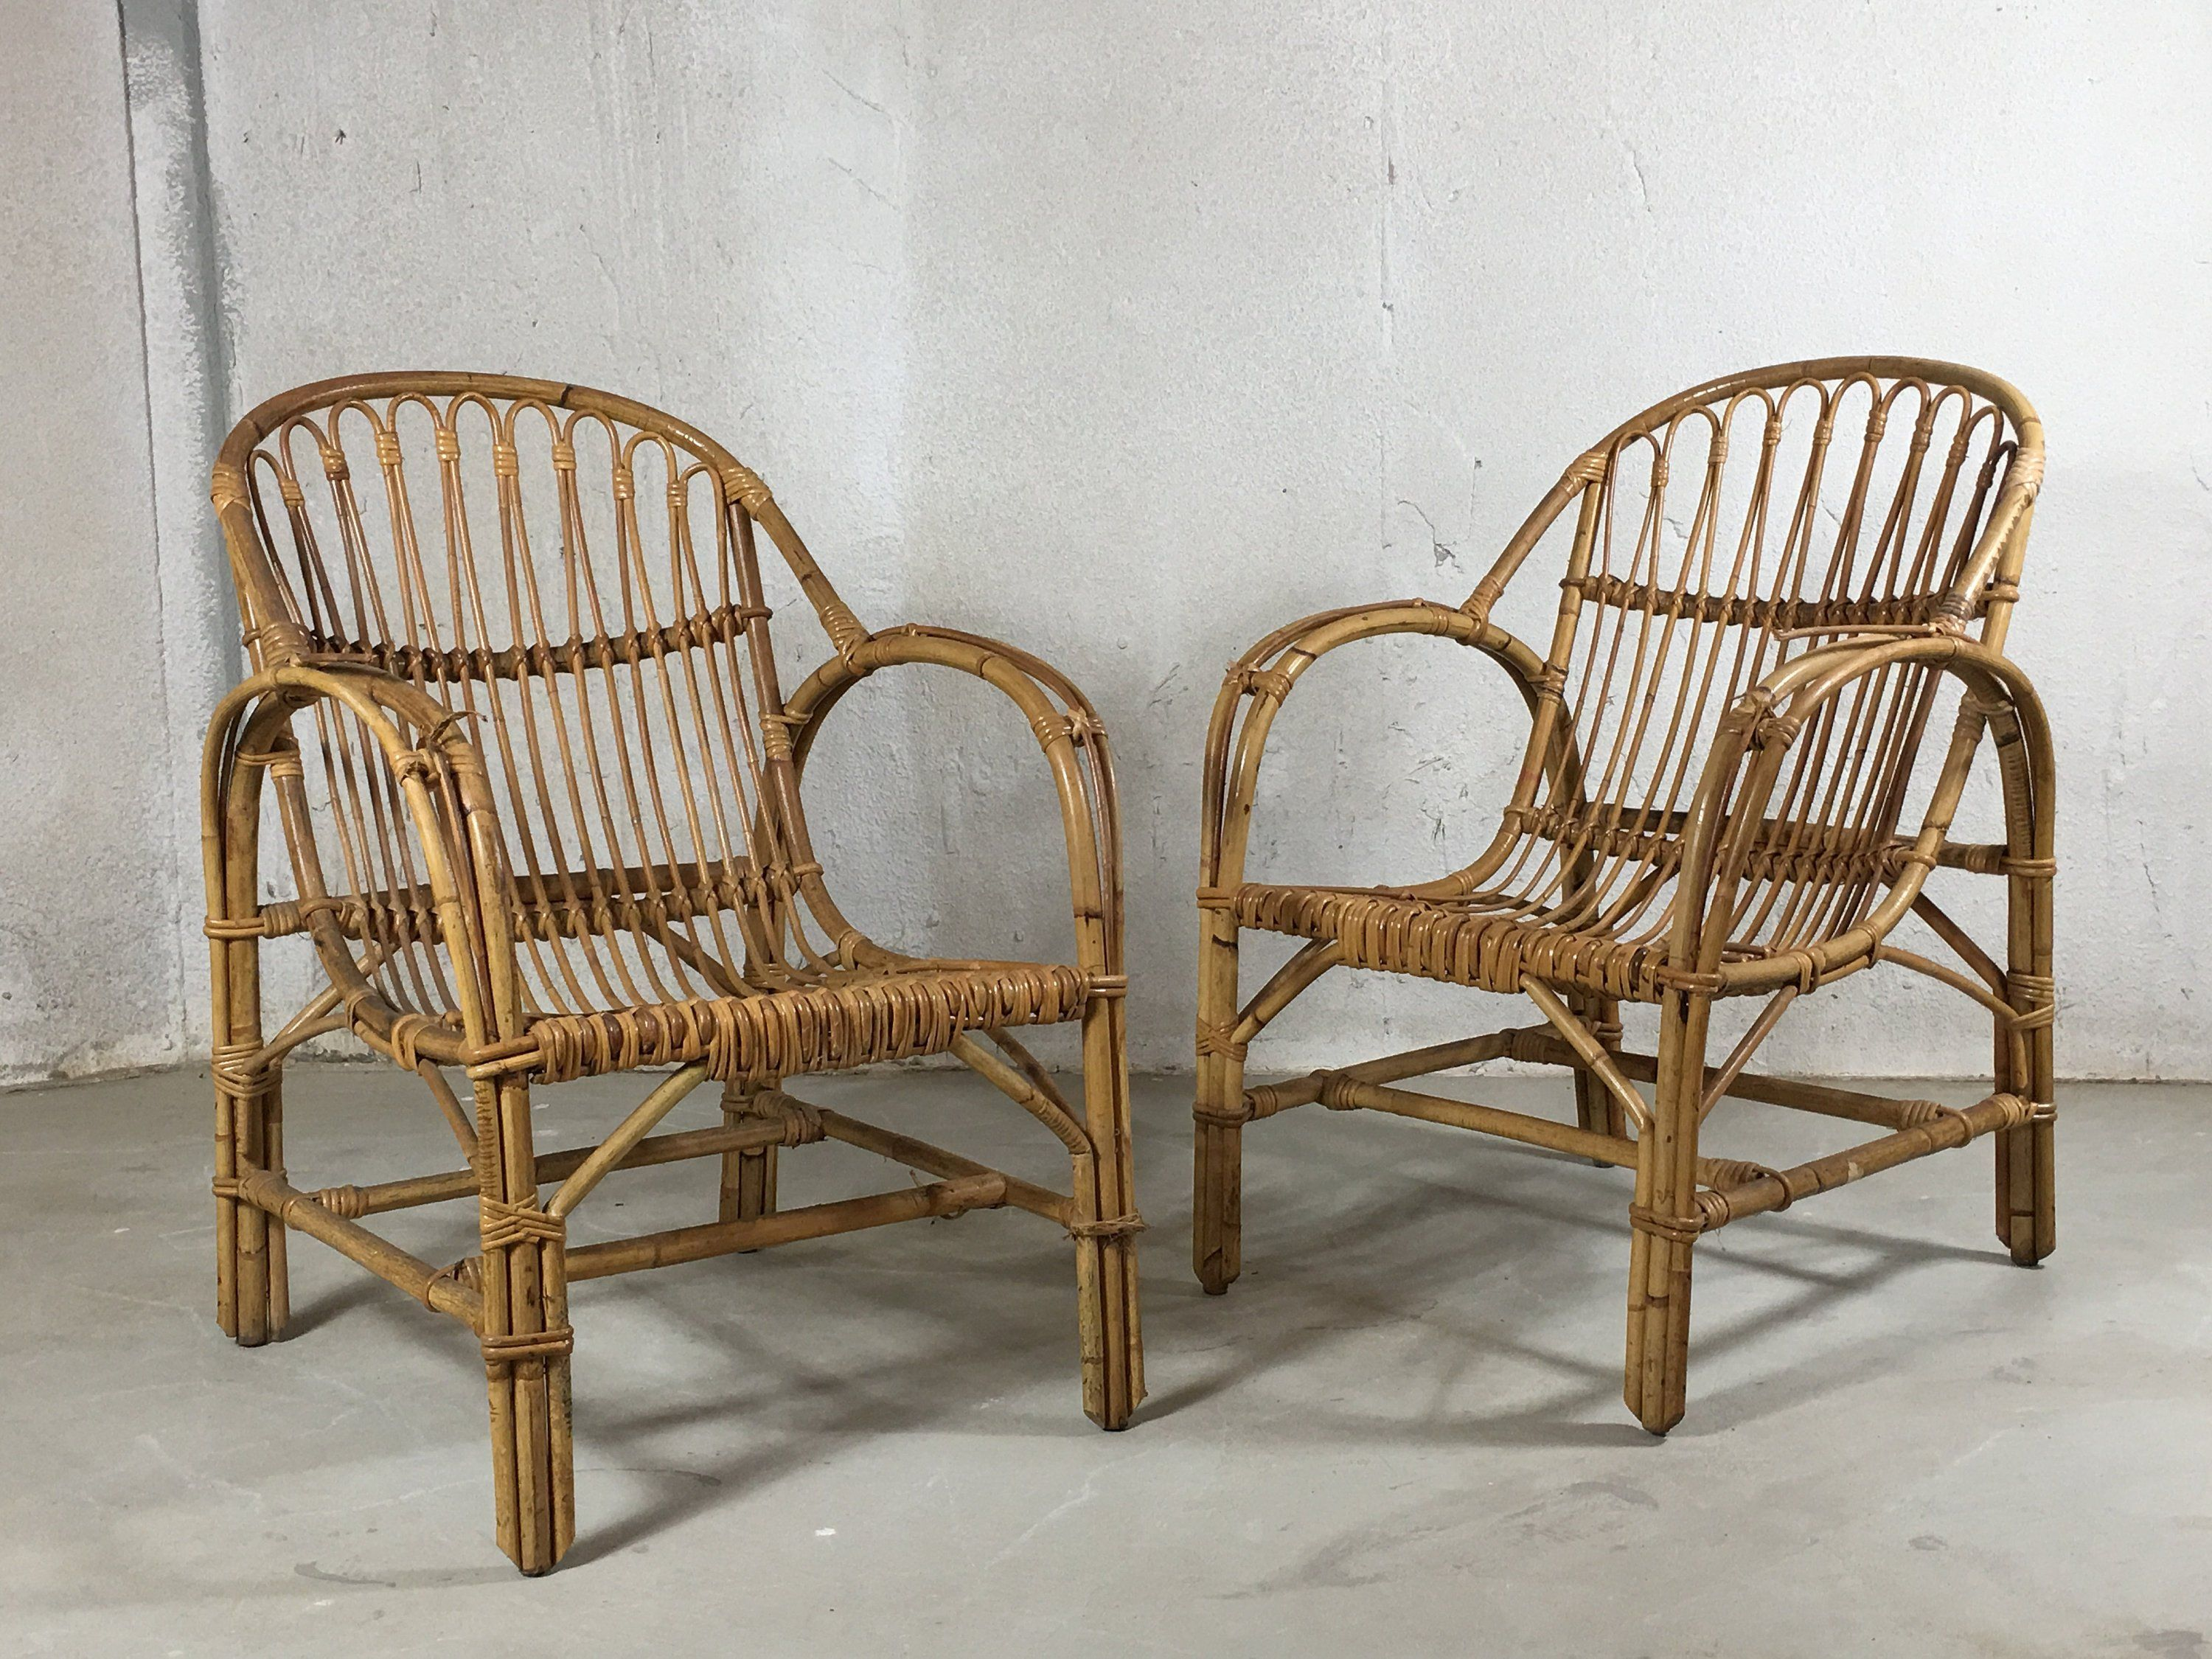 Vintage Rattan Chair Pair Vintage Rattan Chairs Rattan Furniture Wicker Furniture